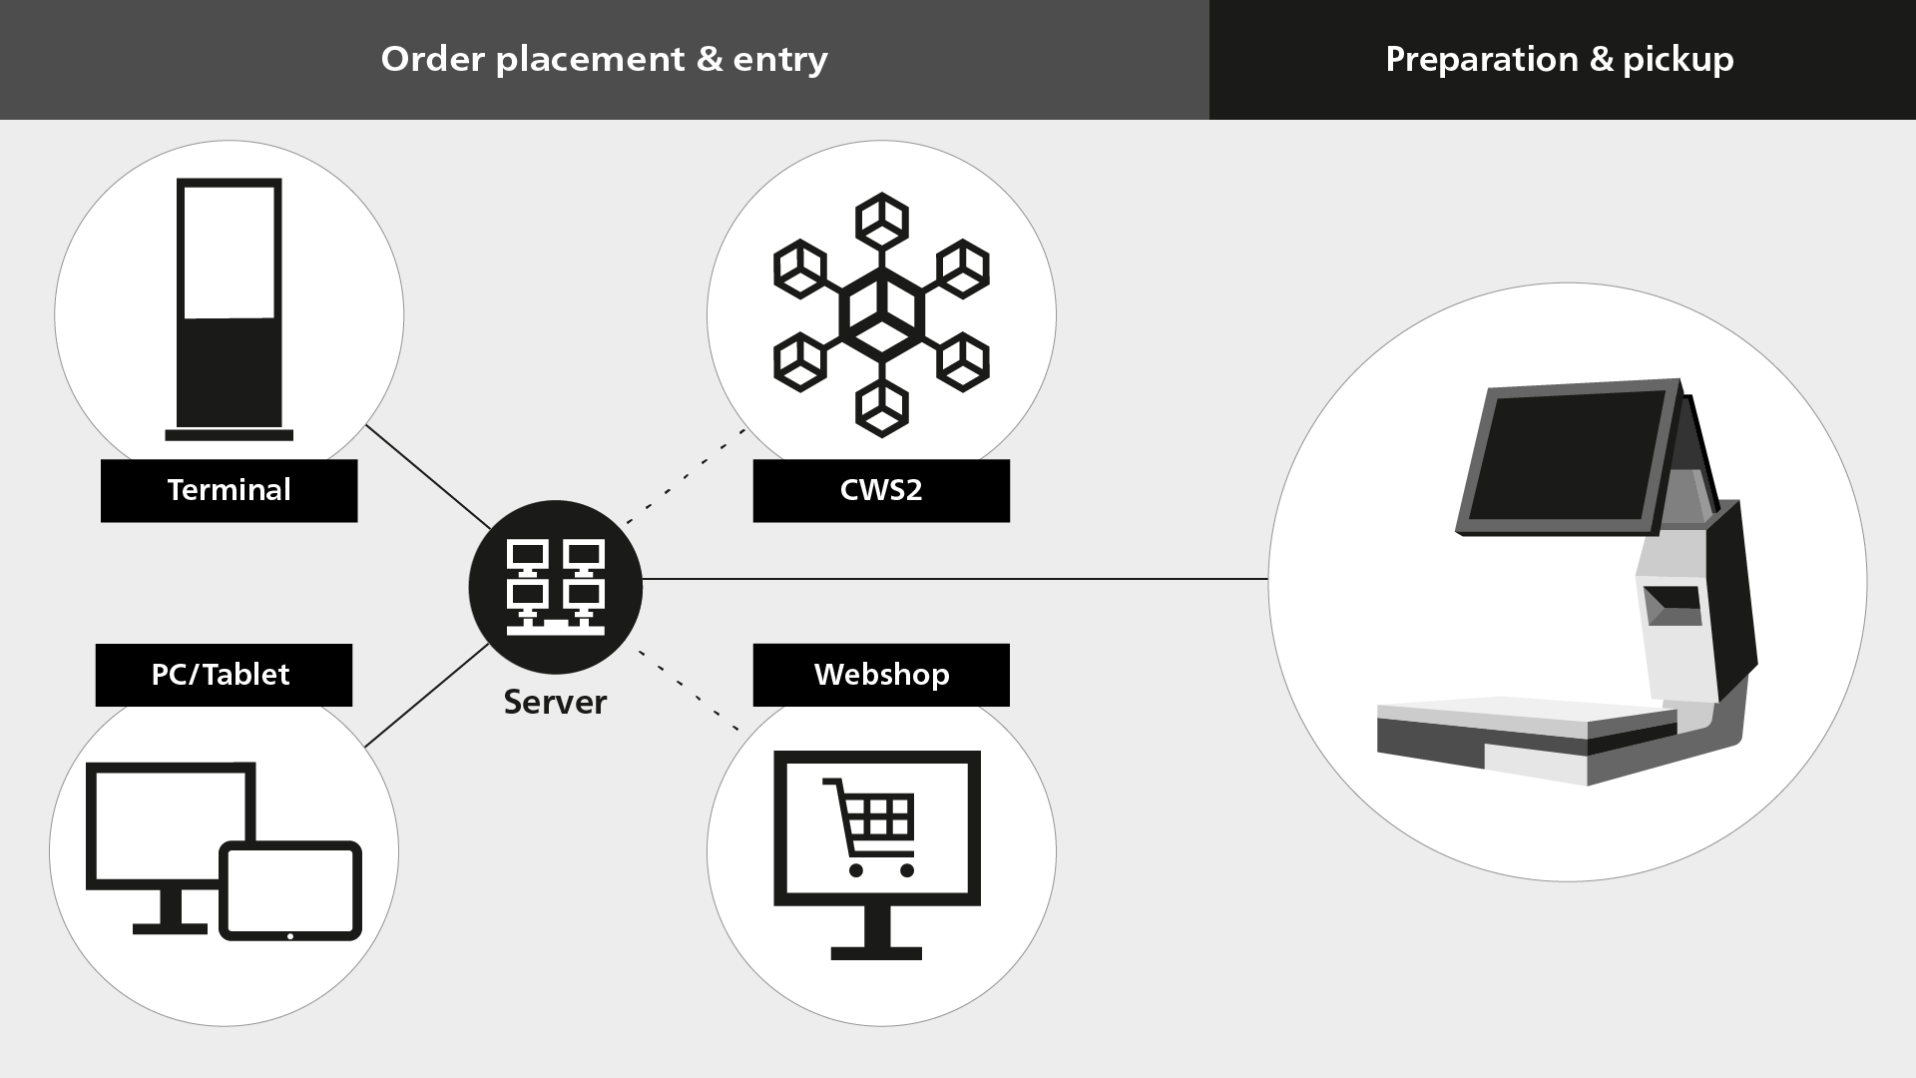 RetailApp MyOrder order placement and processing